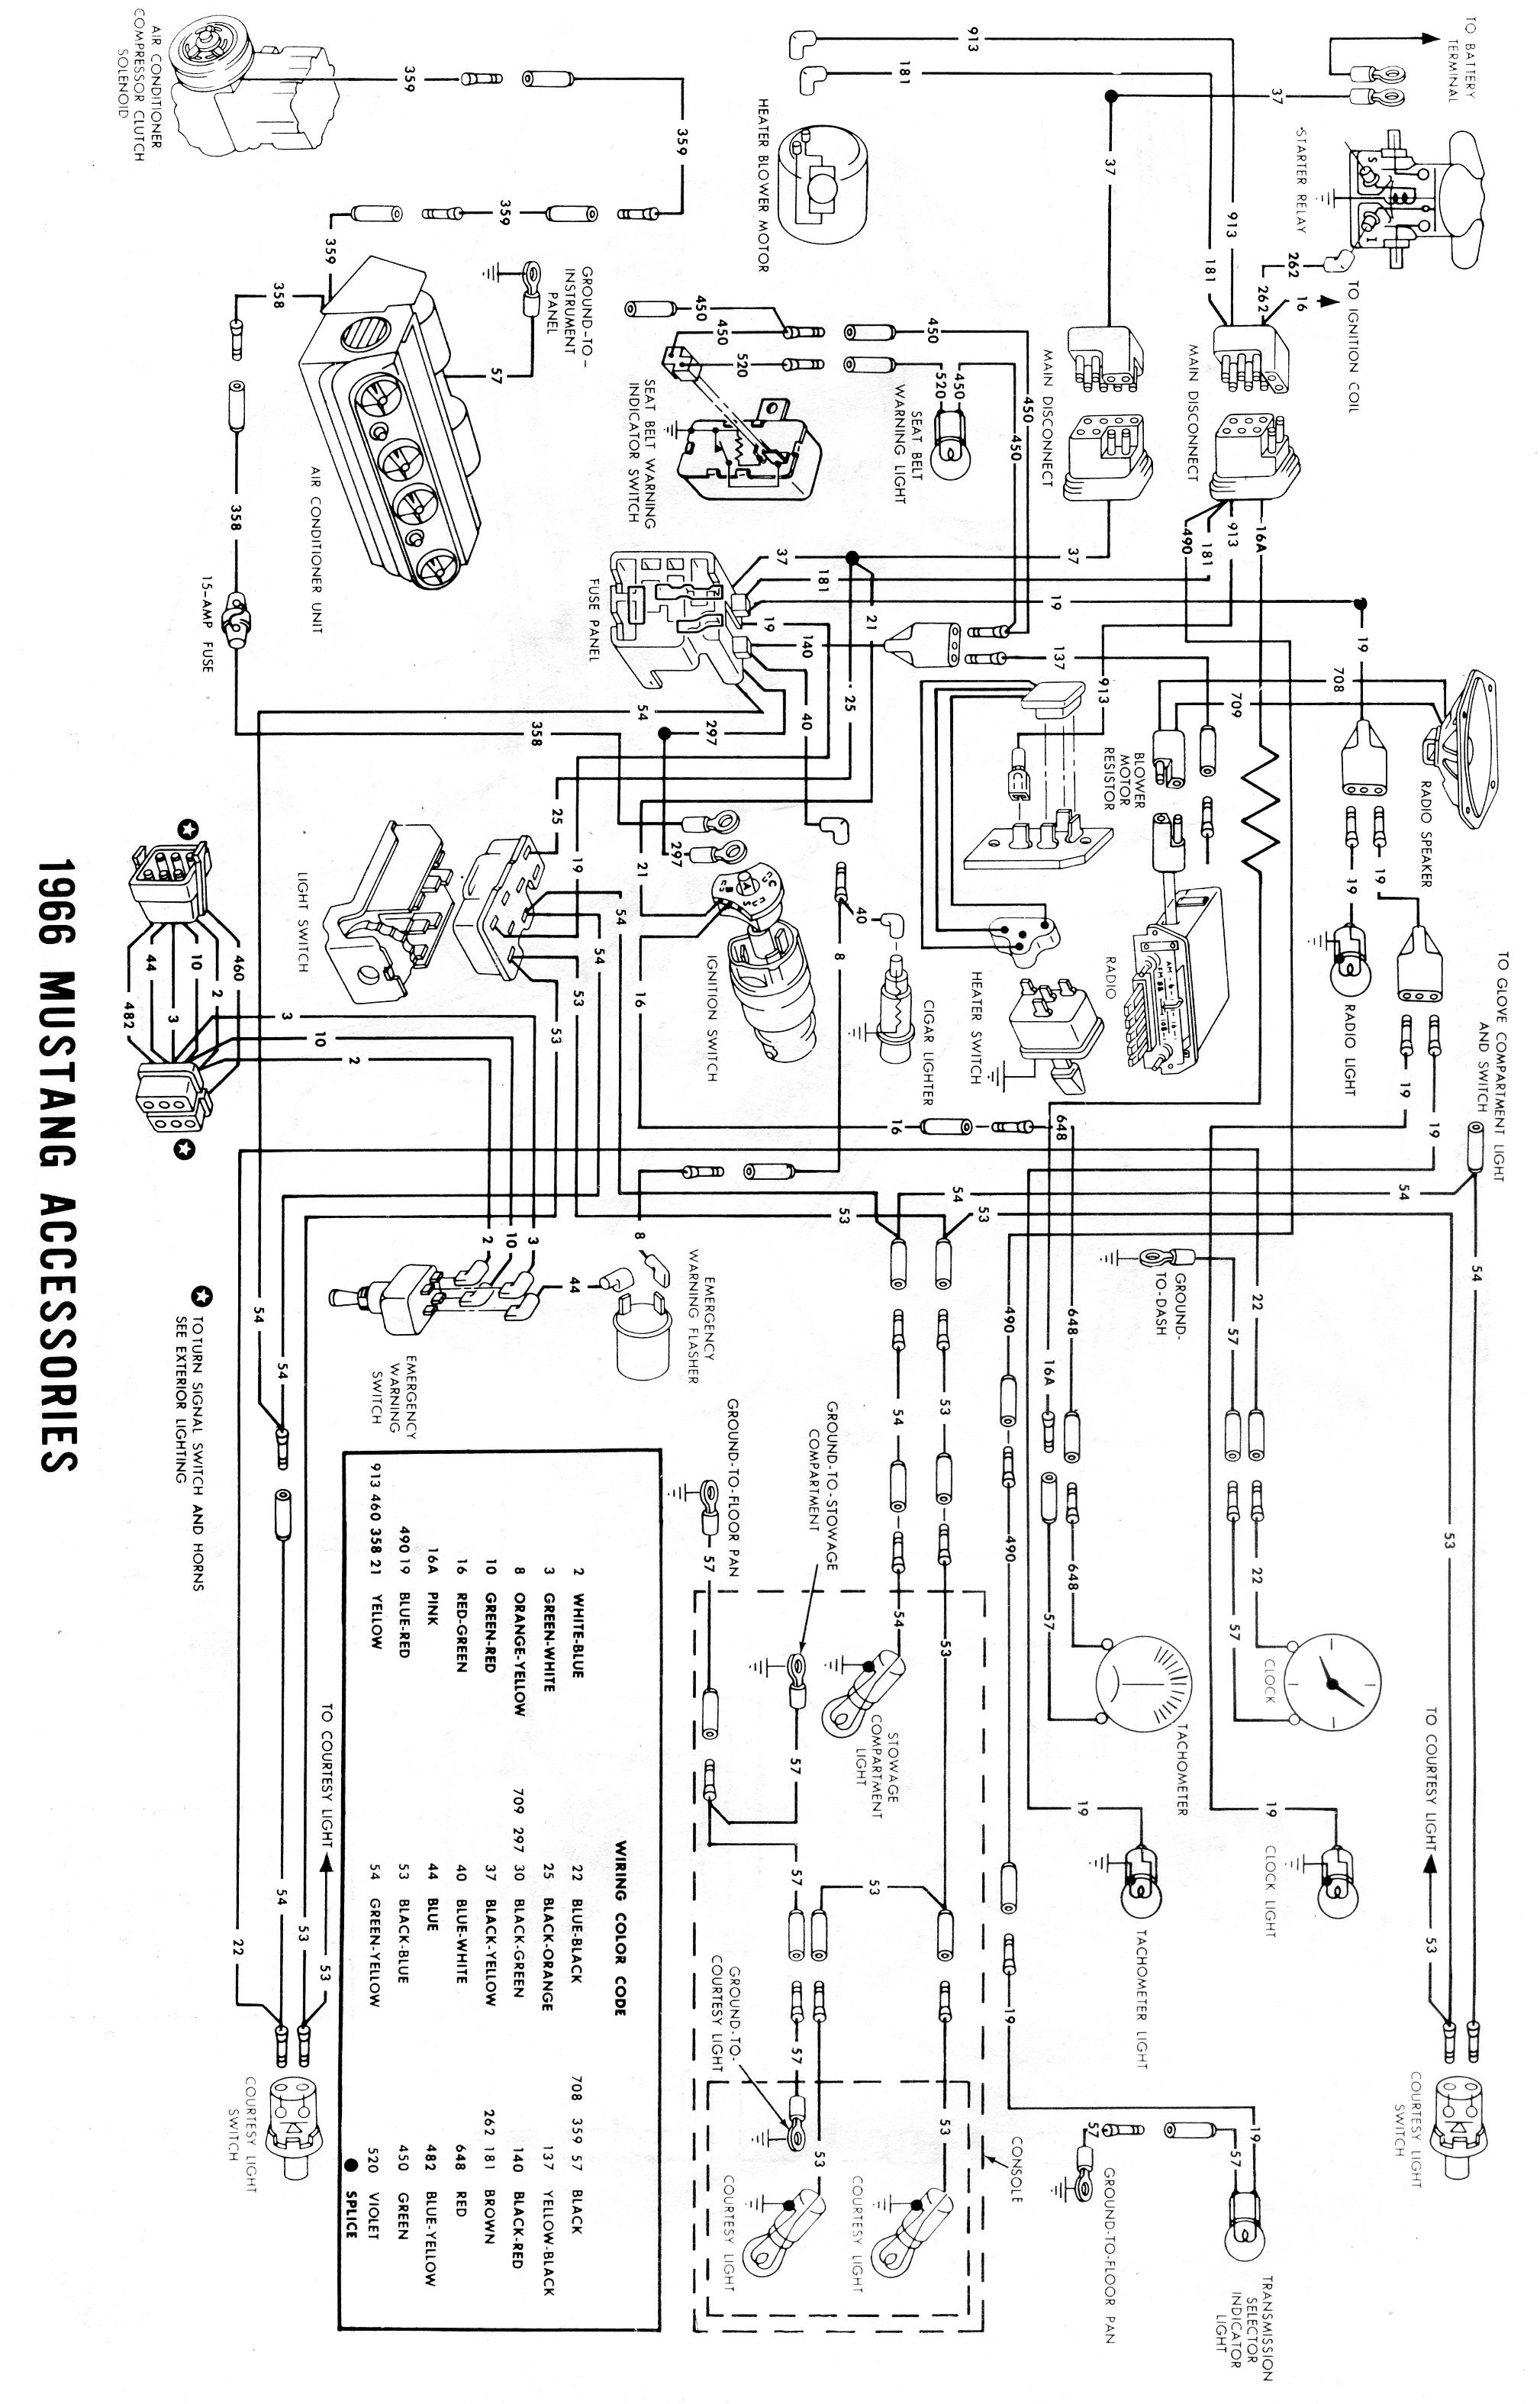 112954d1286846513 why does my instrument fuse keep blowing out mustang wiring 300dpi003 why does my instrument fuse keep blowing out? ford mustang forum 1969 mustang instrument cluster wiring diagram at n-0.co